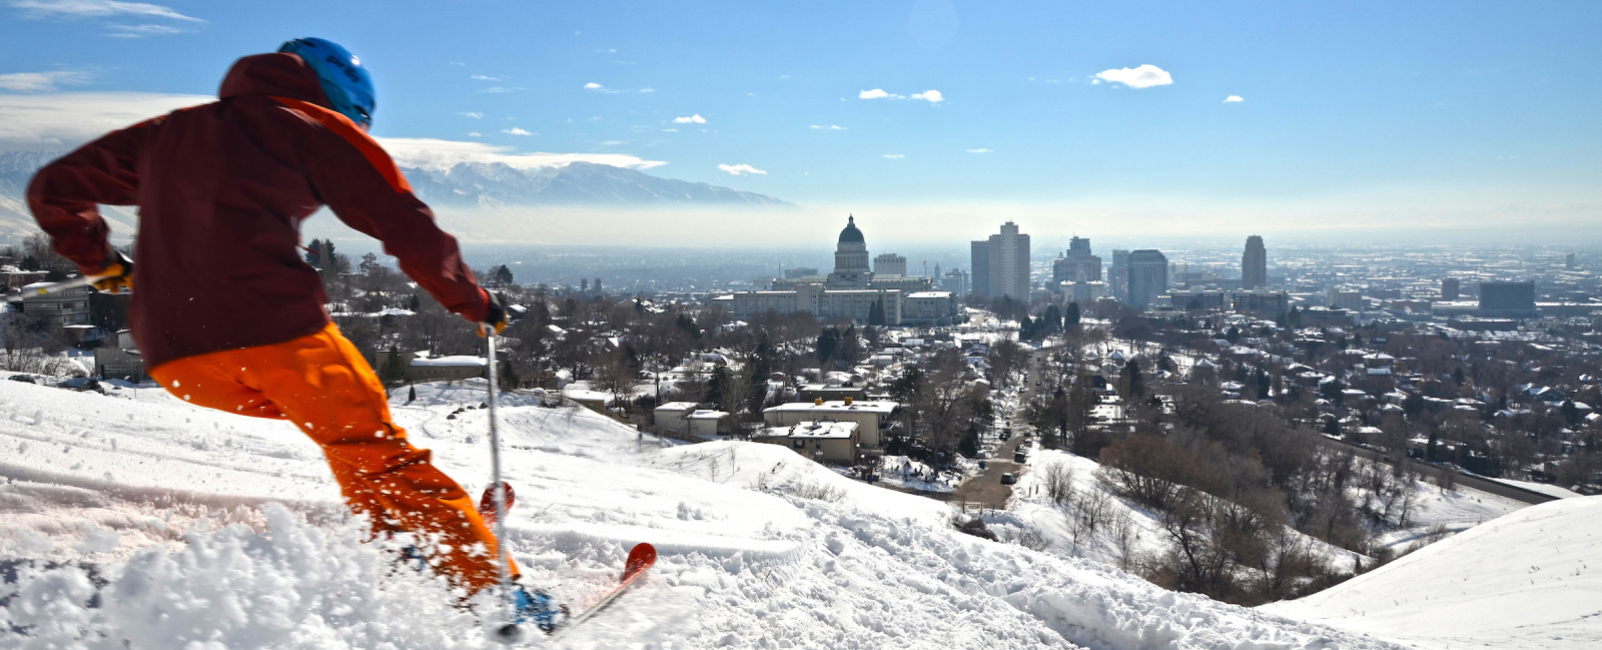 Ski City: A Destination Unlike Any Other